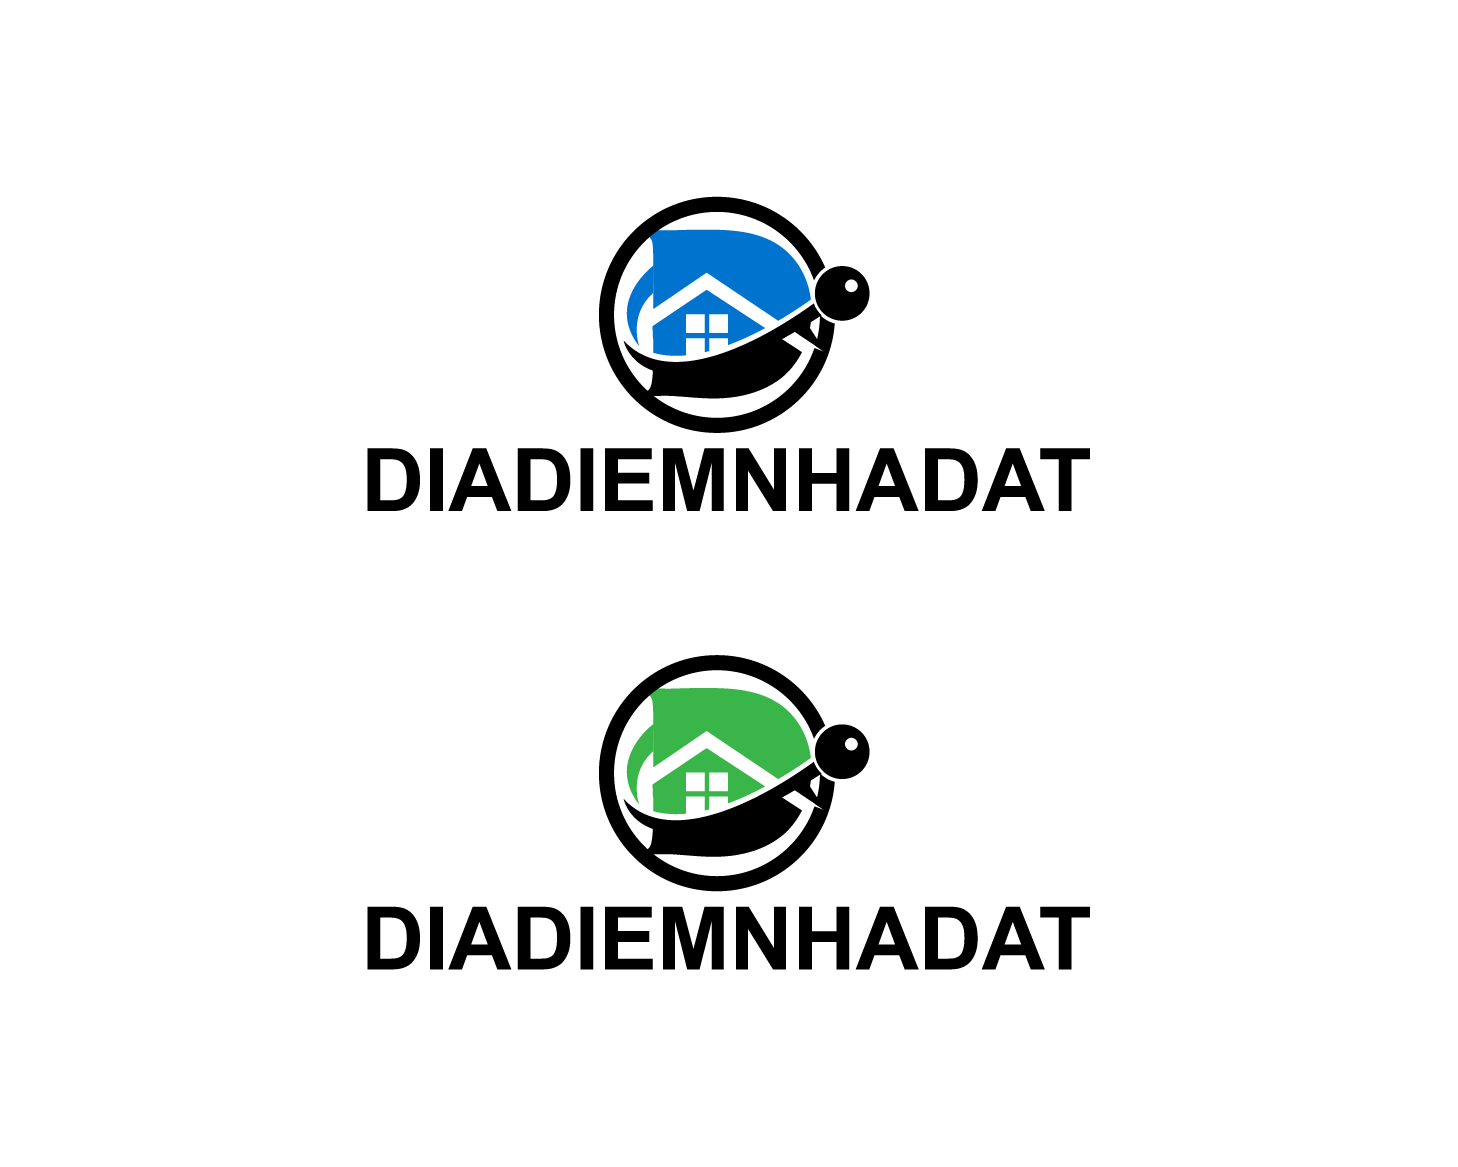 Logo Design by nirarajgraphics - Entry No. 58 in the Logo Design Contest New Logo Design for DIADIEMNHADAT.